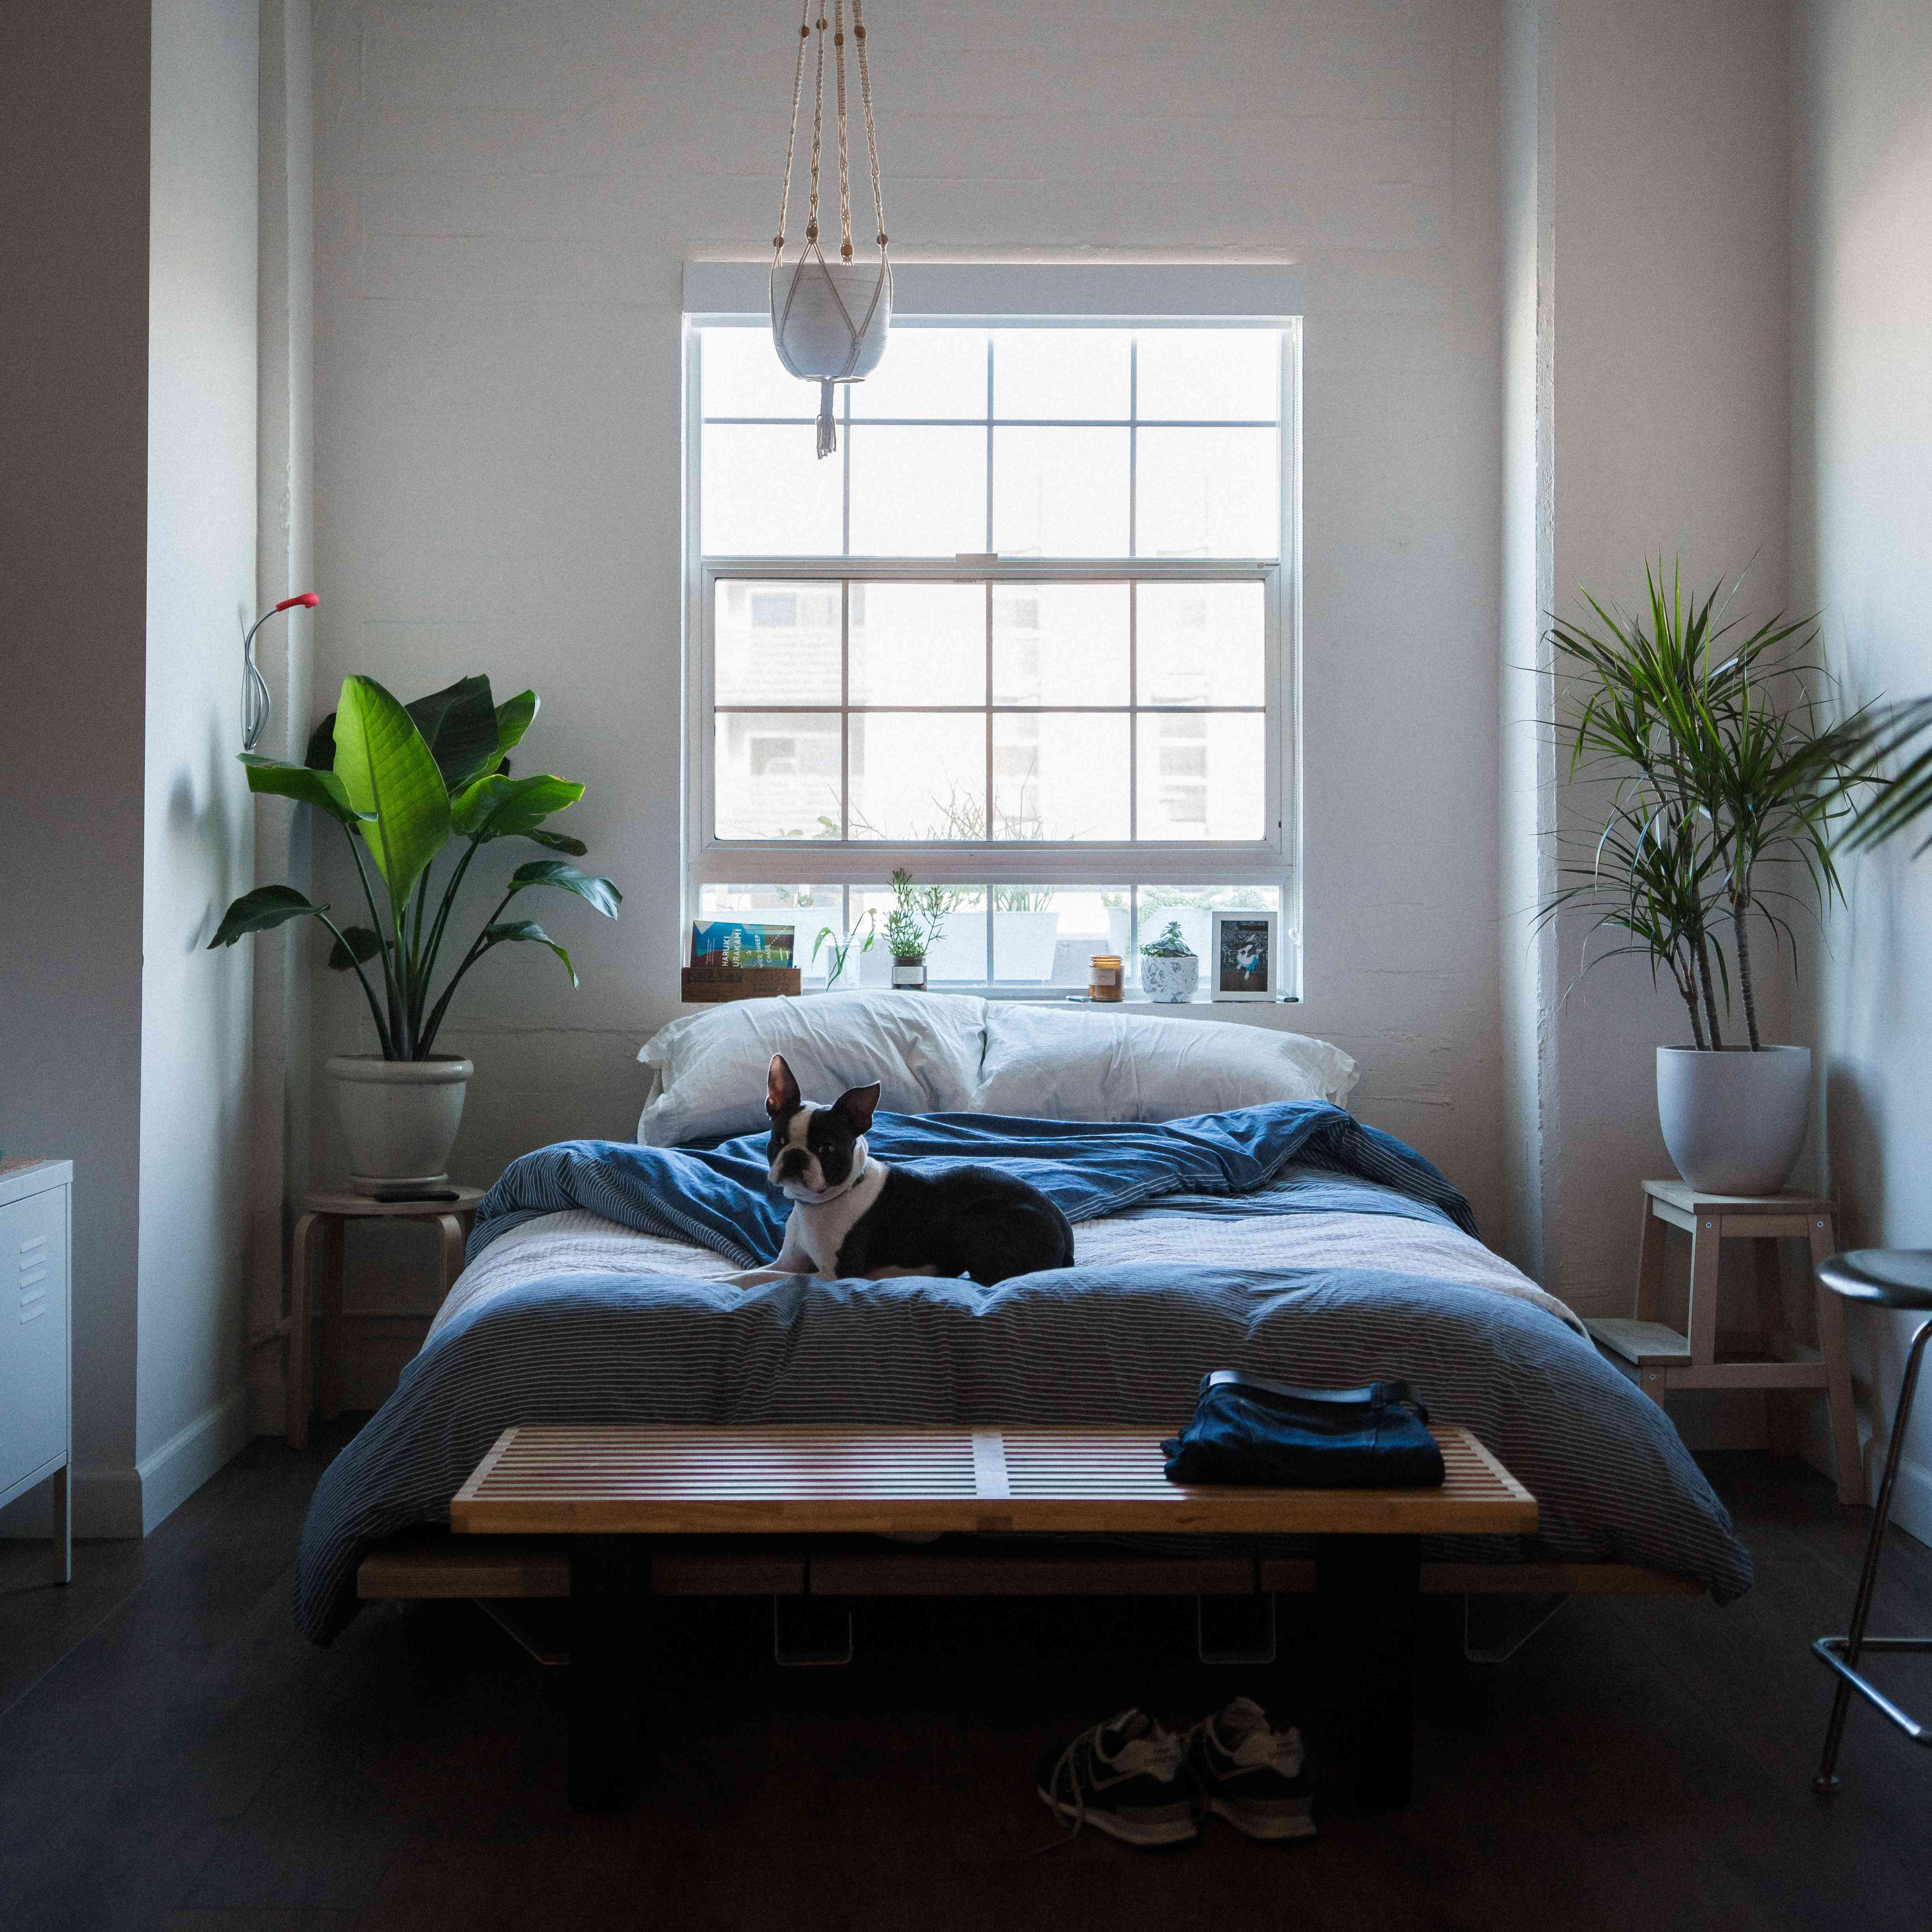 Quiet bedroom with plants, dark floors and blue linens